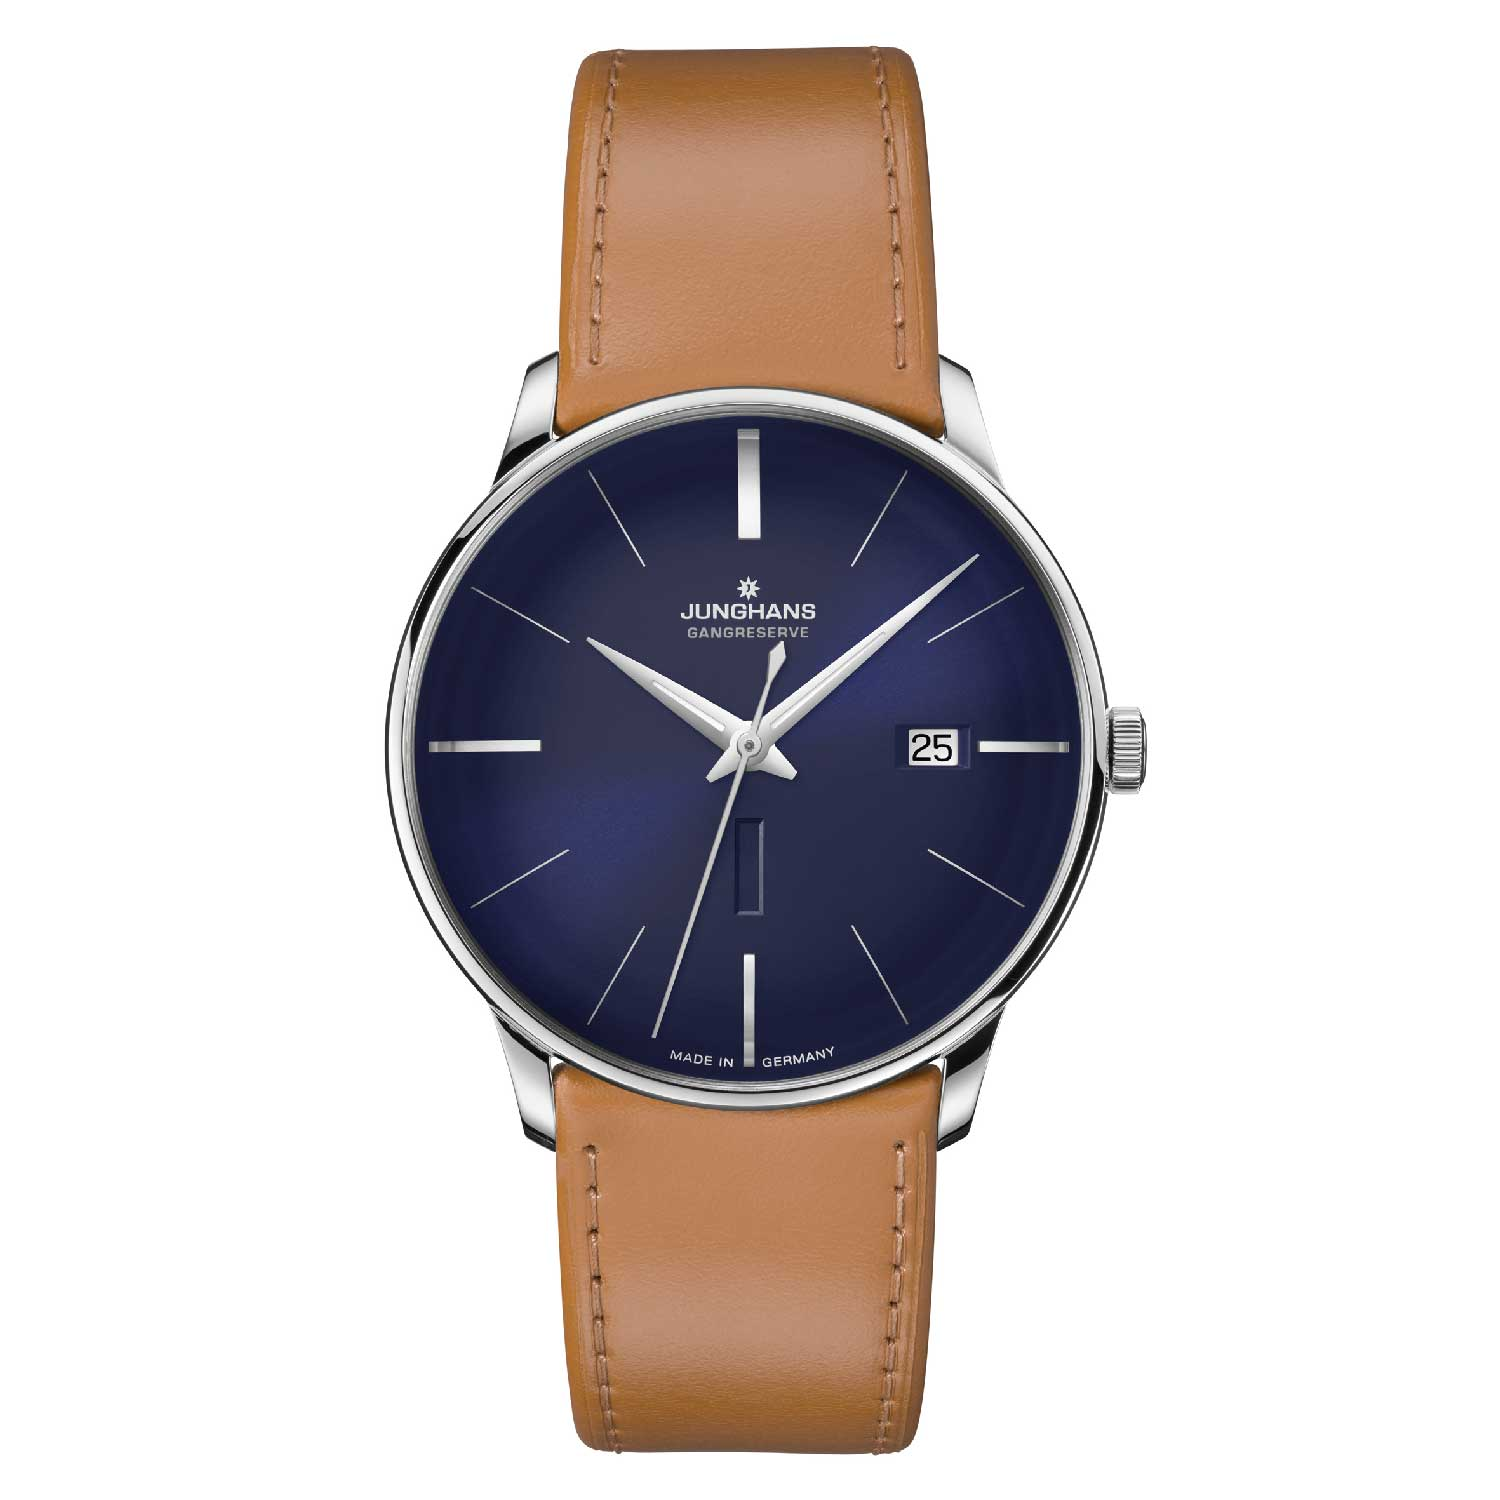 Available in three models, the Junghans Meister Gangreserve Edition 160 has a discreet date window well integrated into the clean design of the dial.